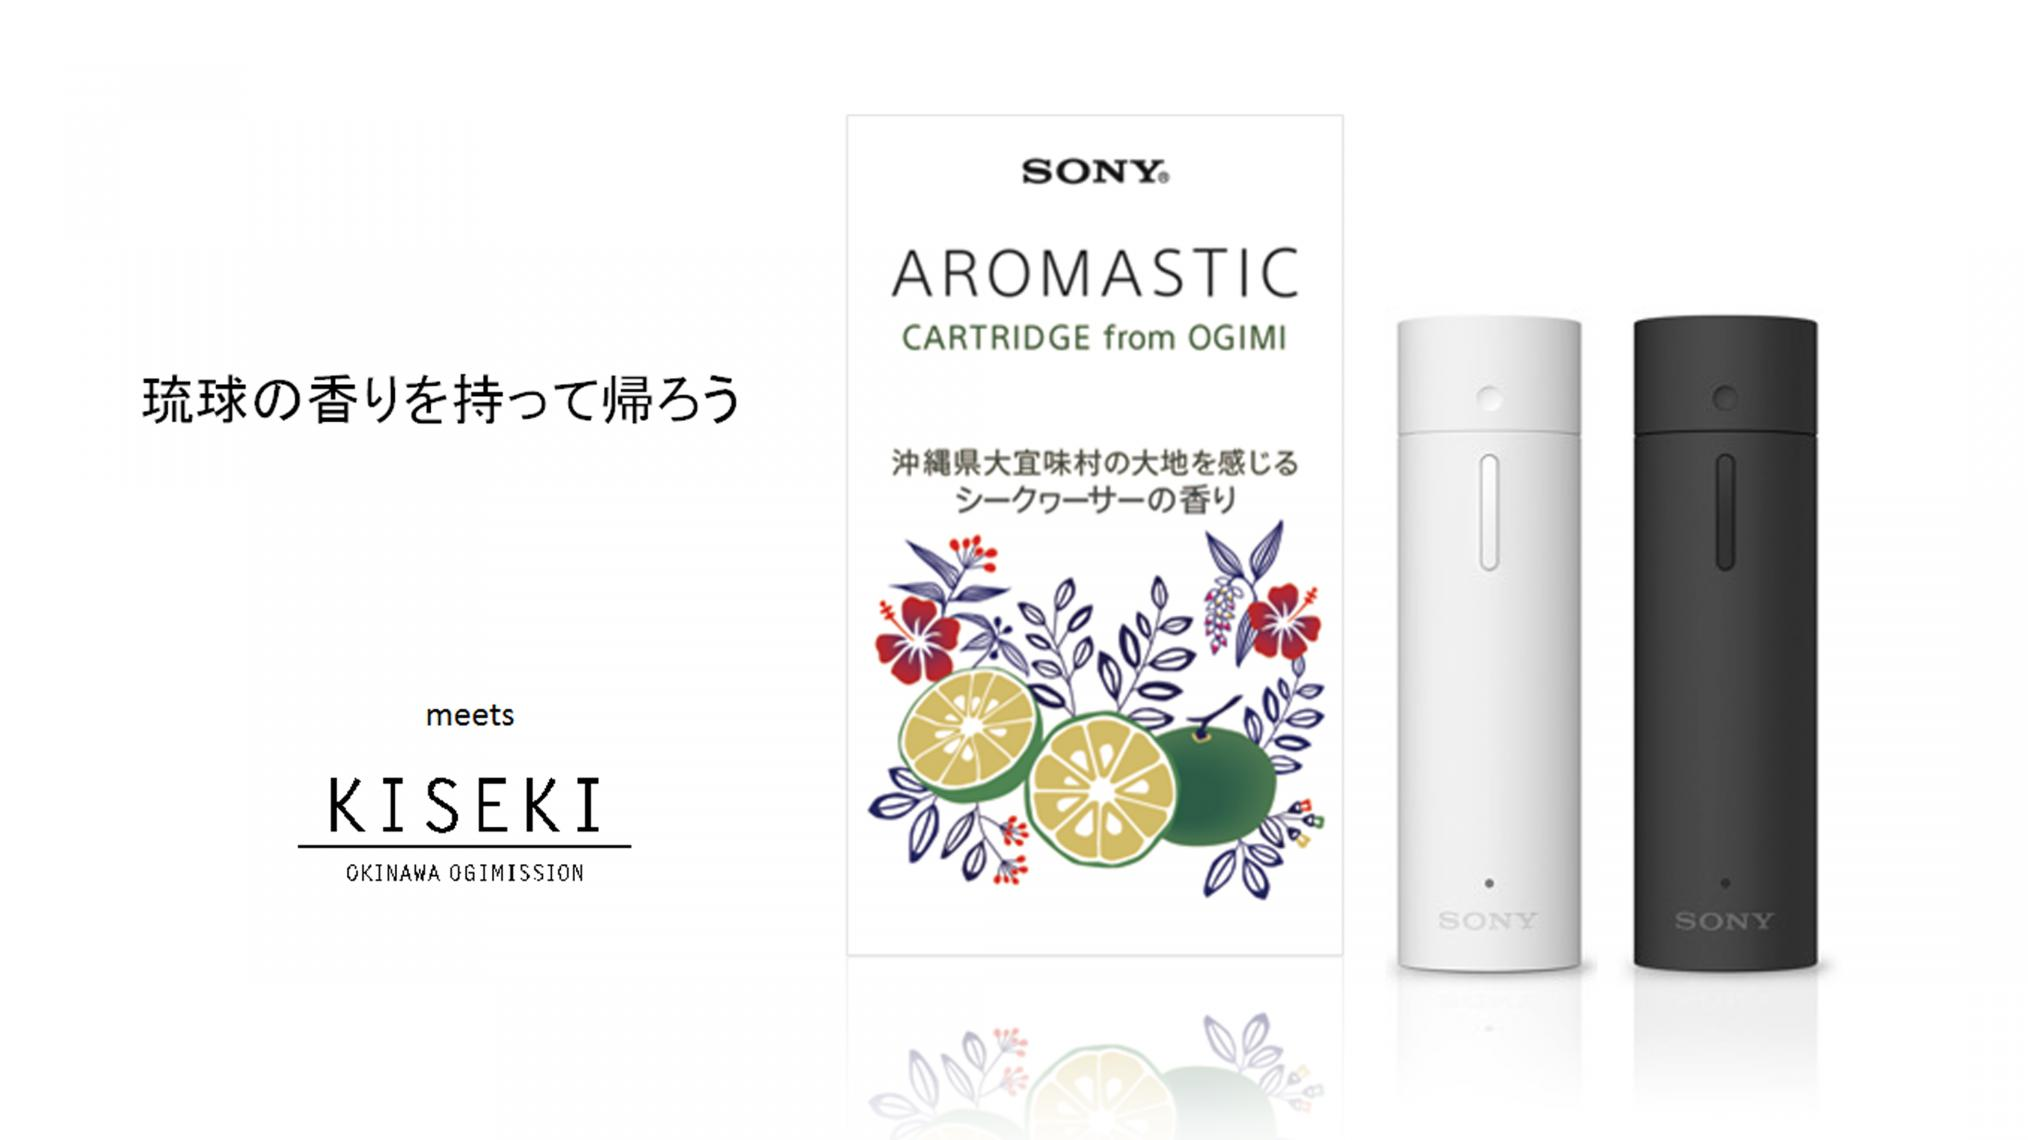 AROMASTIC & AROMASTIC CARTRIDGE from OGIMI セット